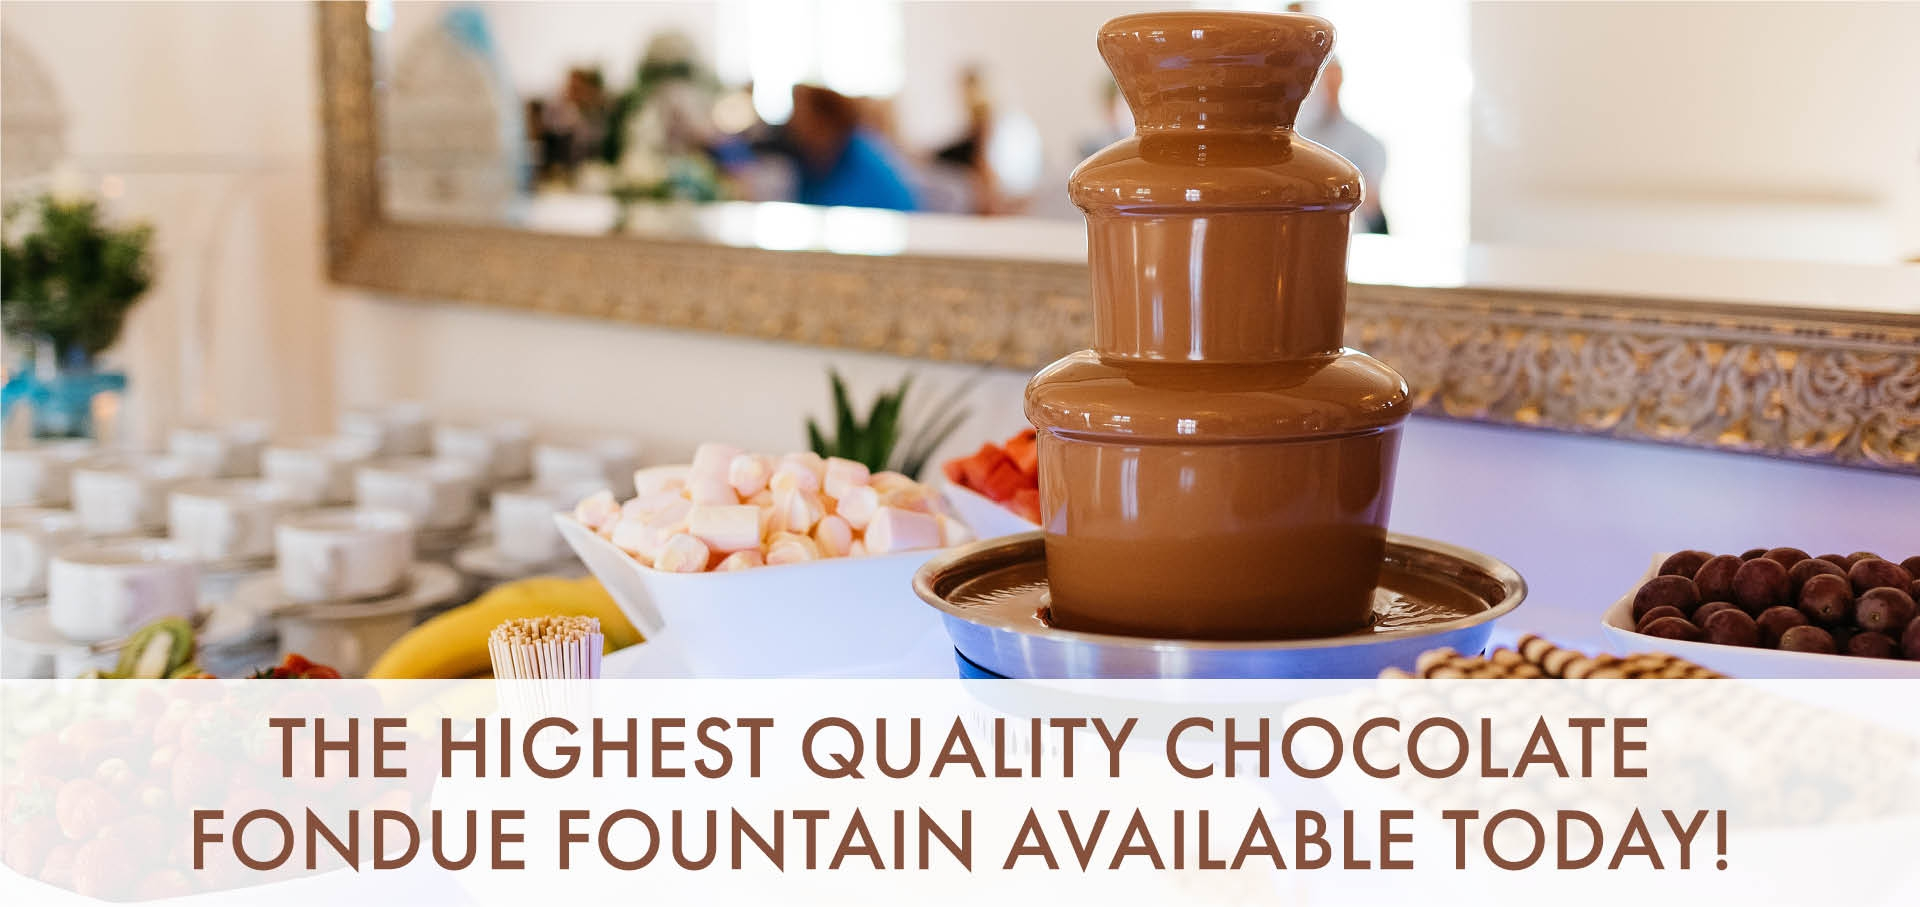 Home Chocolate Fountains